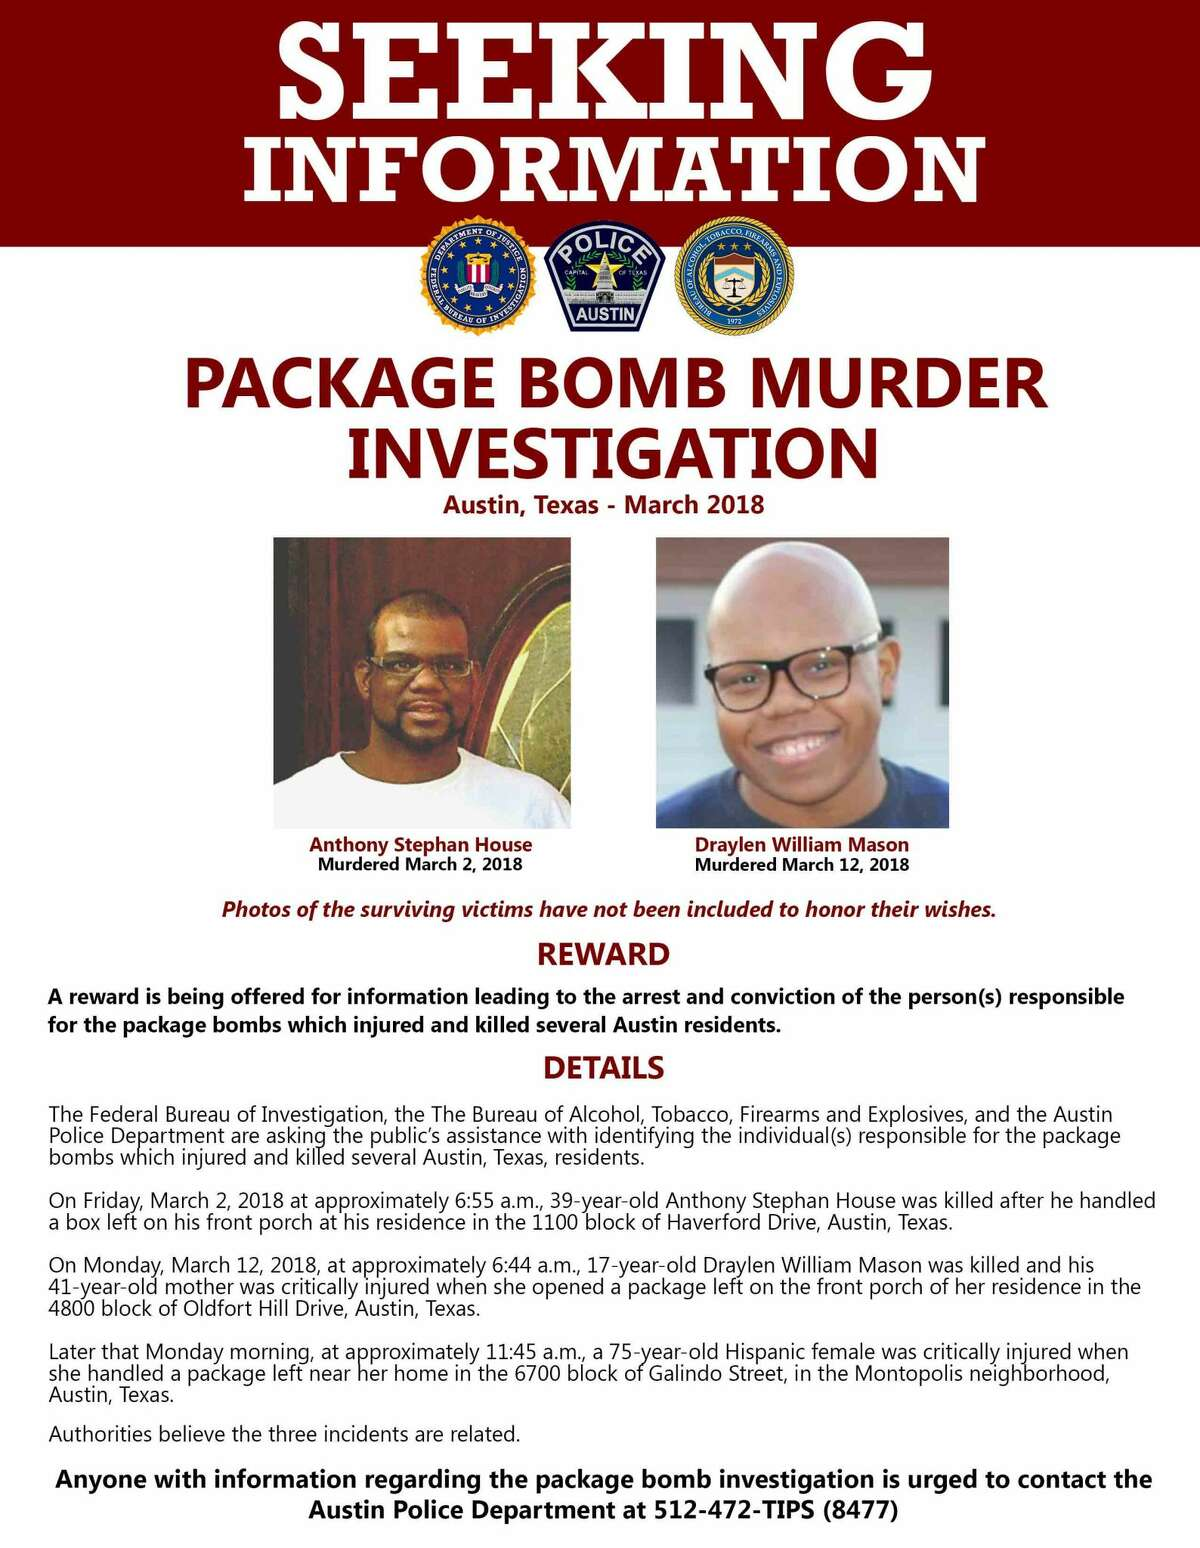 On Sunday, March 18, 2018, the Austin Police Department, Federal Bureau of Investigation and Bureau of Alcohol, Tobacco, Firearms and Explosives announced the three agencies are now offering a reward of up to $100,000 for information leading to the arrest and conviction of the person(s) responsible for the package bombs which recently injured and killed several Austin residents.